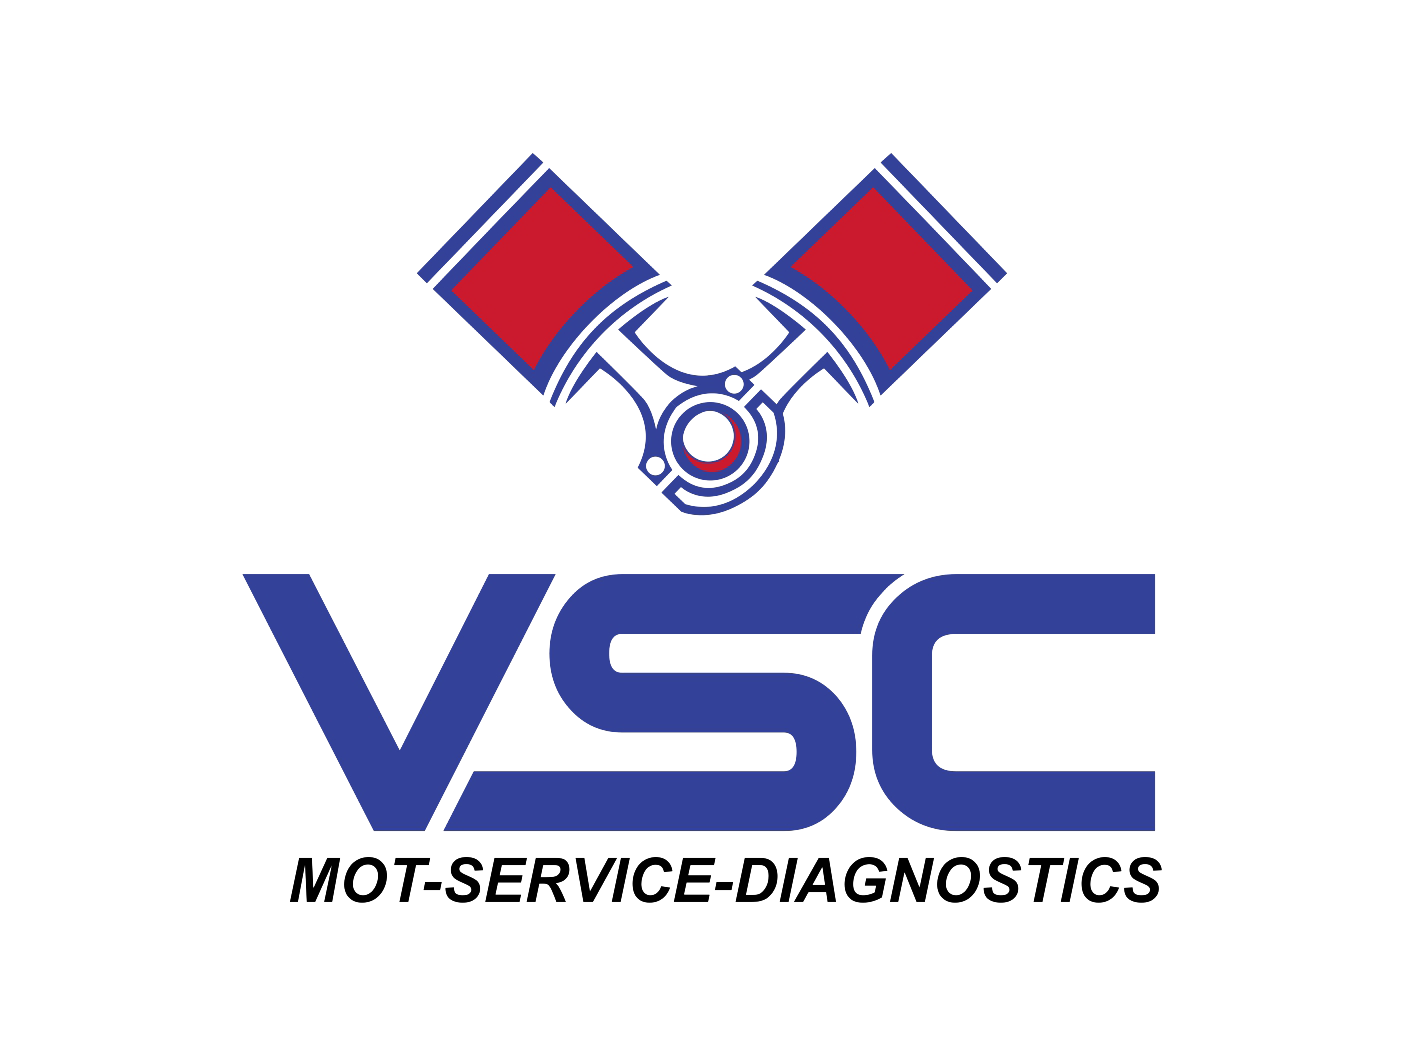 Vehicle Service Centre Ltd